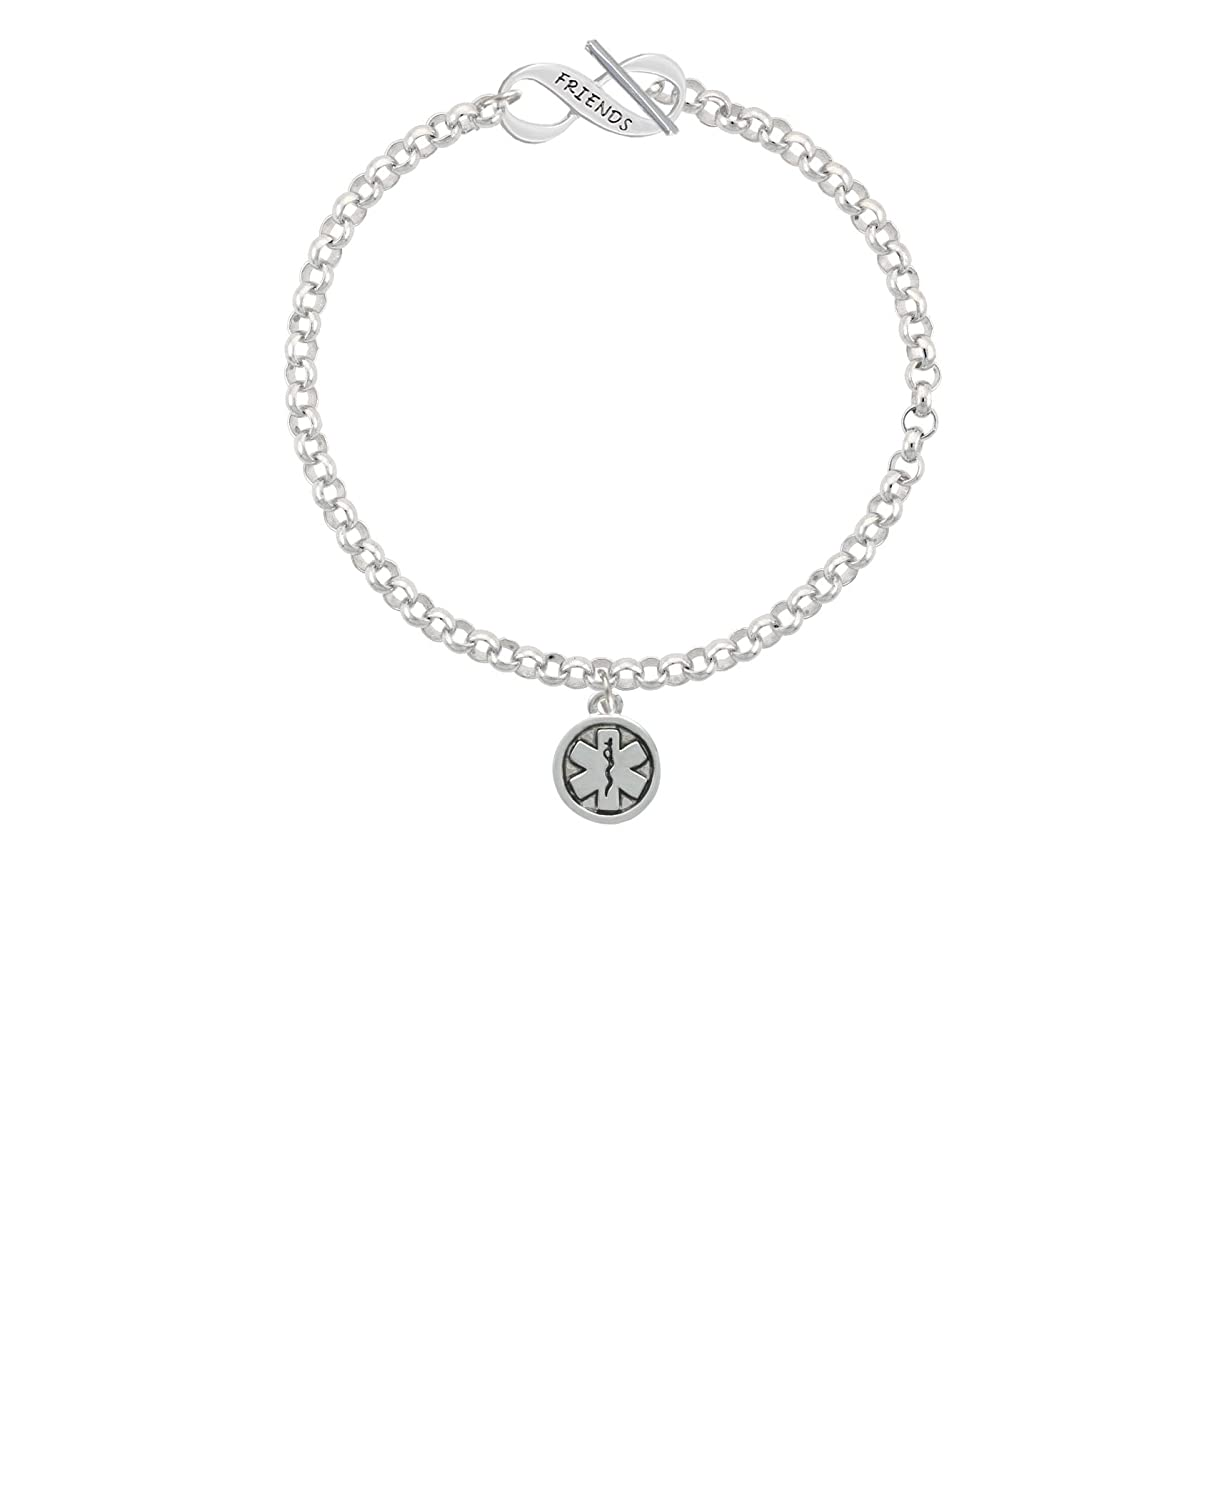 Silvertone Round EMT Star of Life Friends Infinity Toggle Chain Bracelet 8